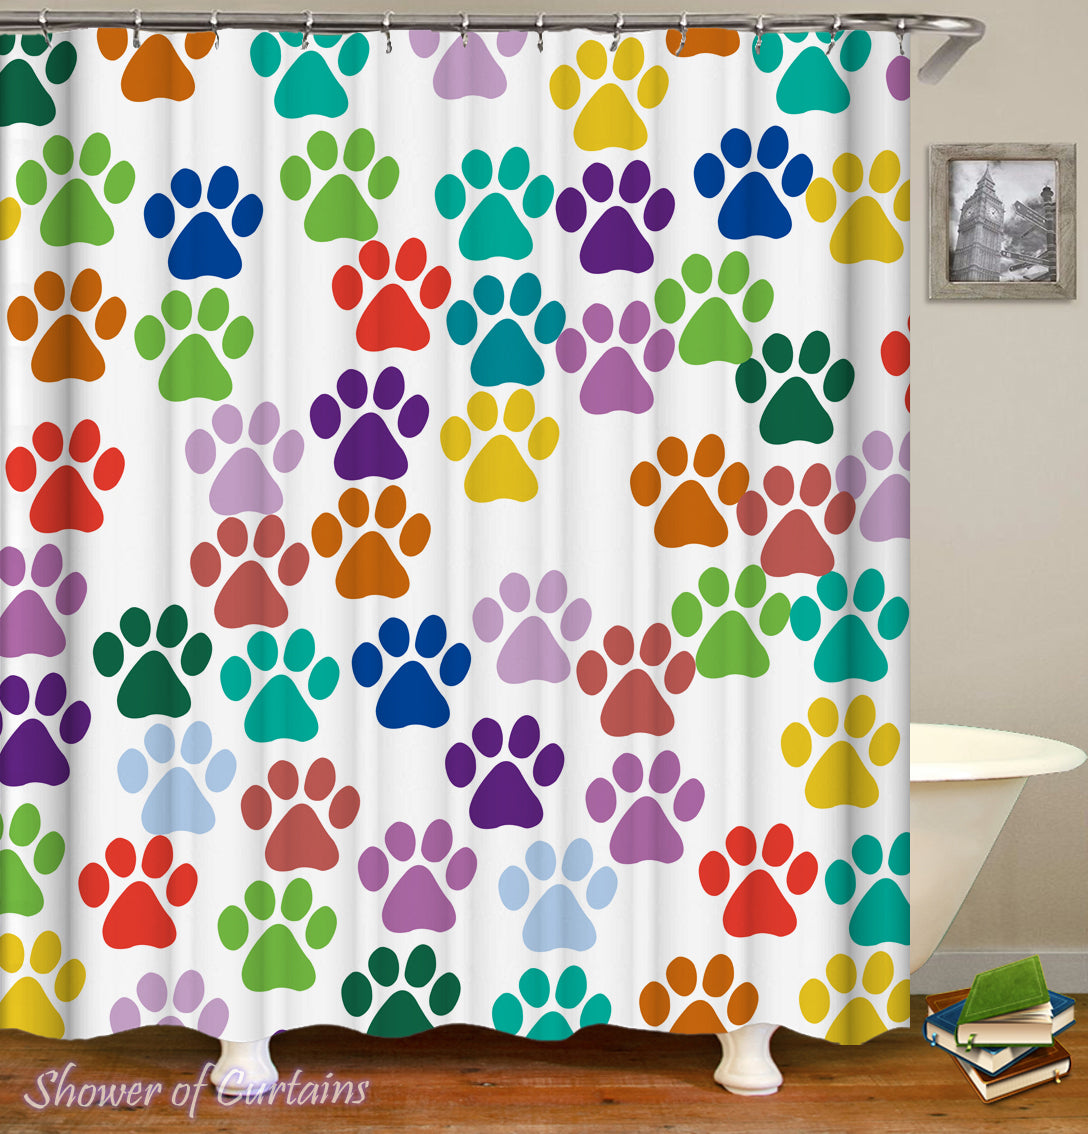 colorful dog paws shower curtain - Colorful Shower Curtains